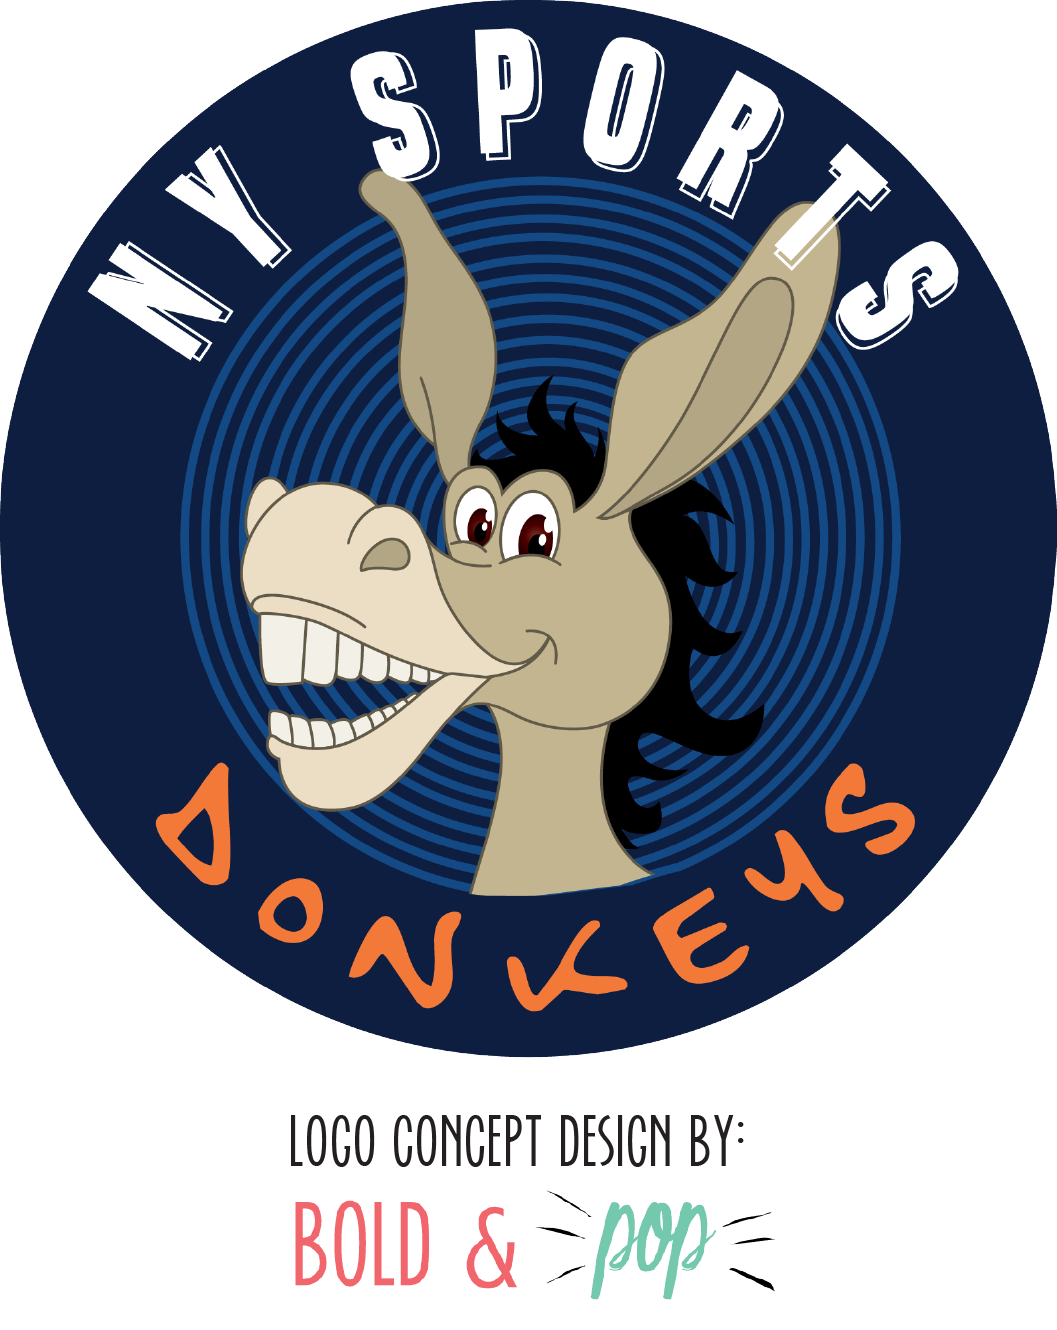 Bold & Pop : NY Sports Donkeys Branding Design